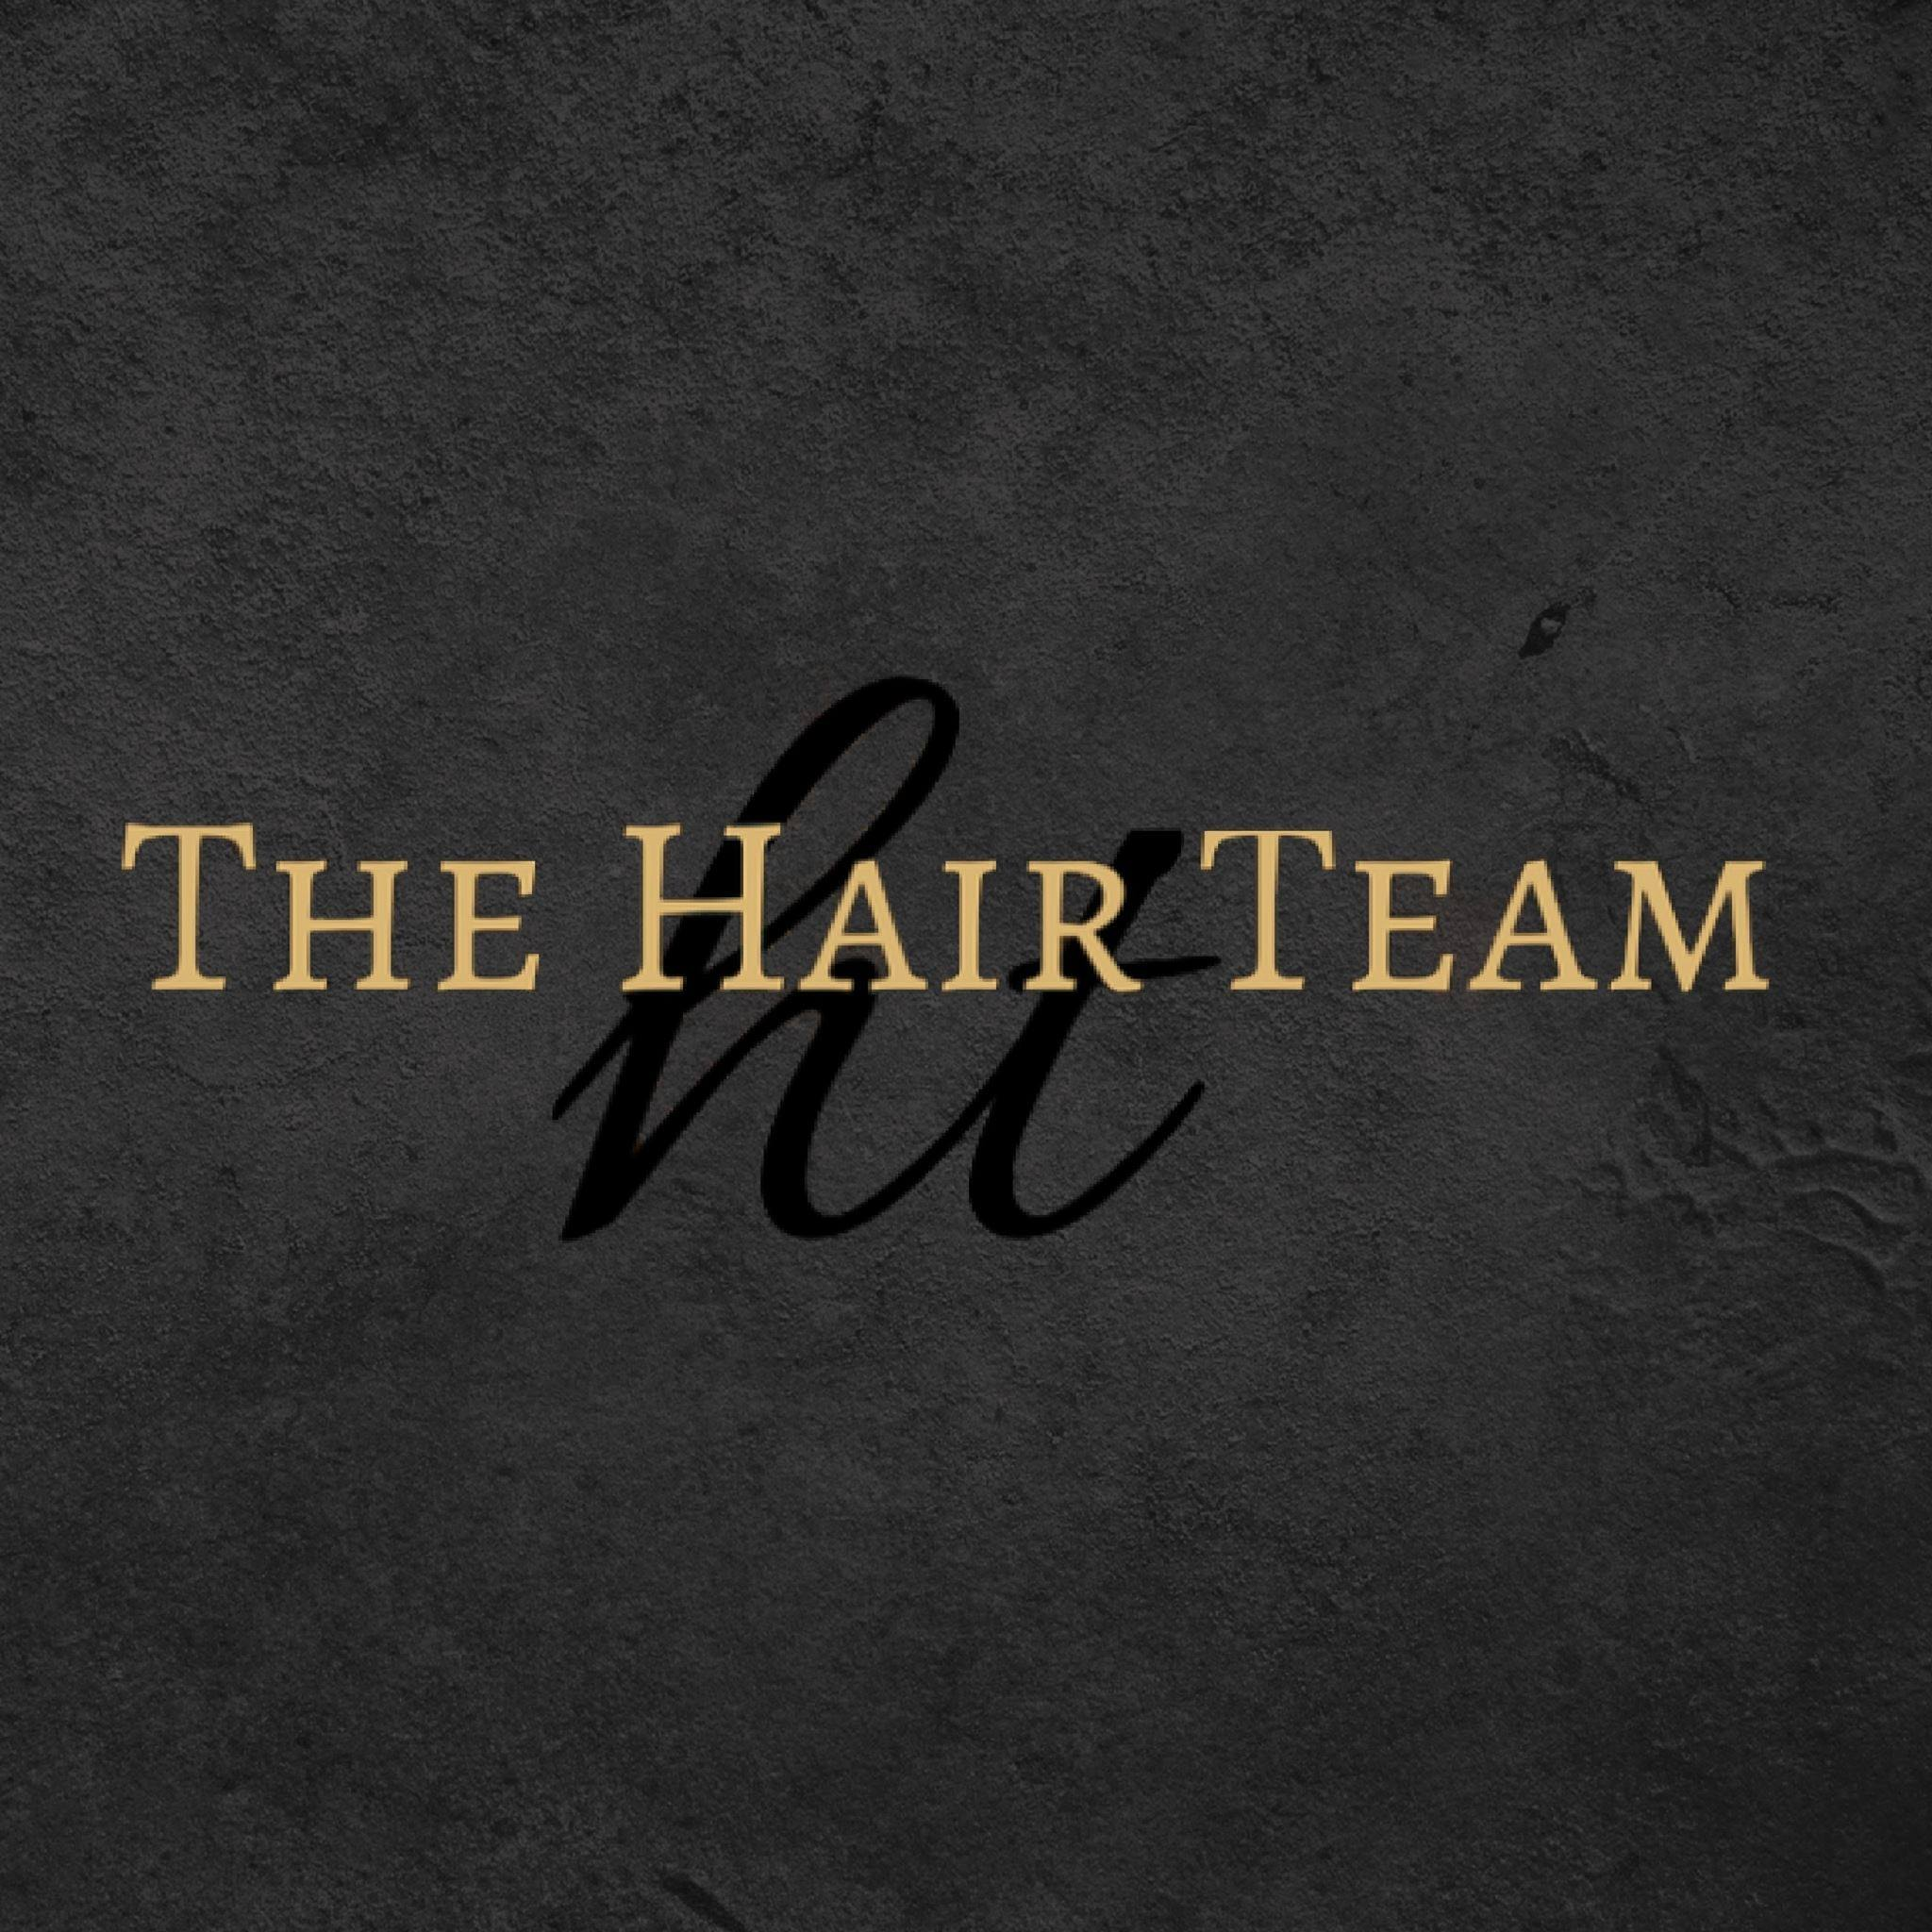 The Hair Team